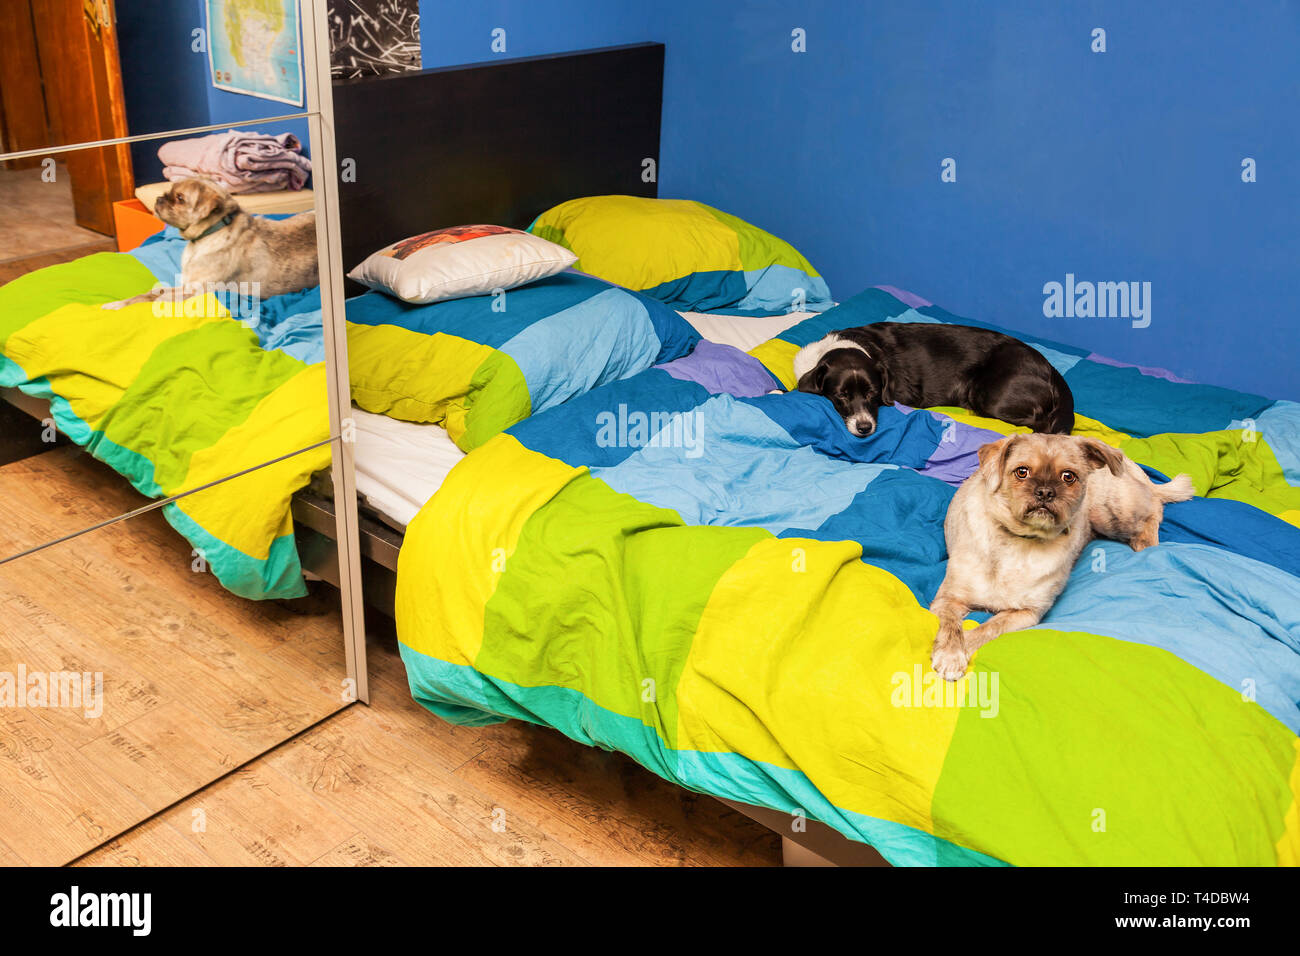 Two dogs lying in a bed - Stock Image